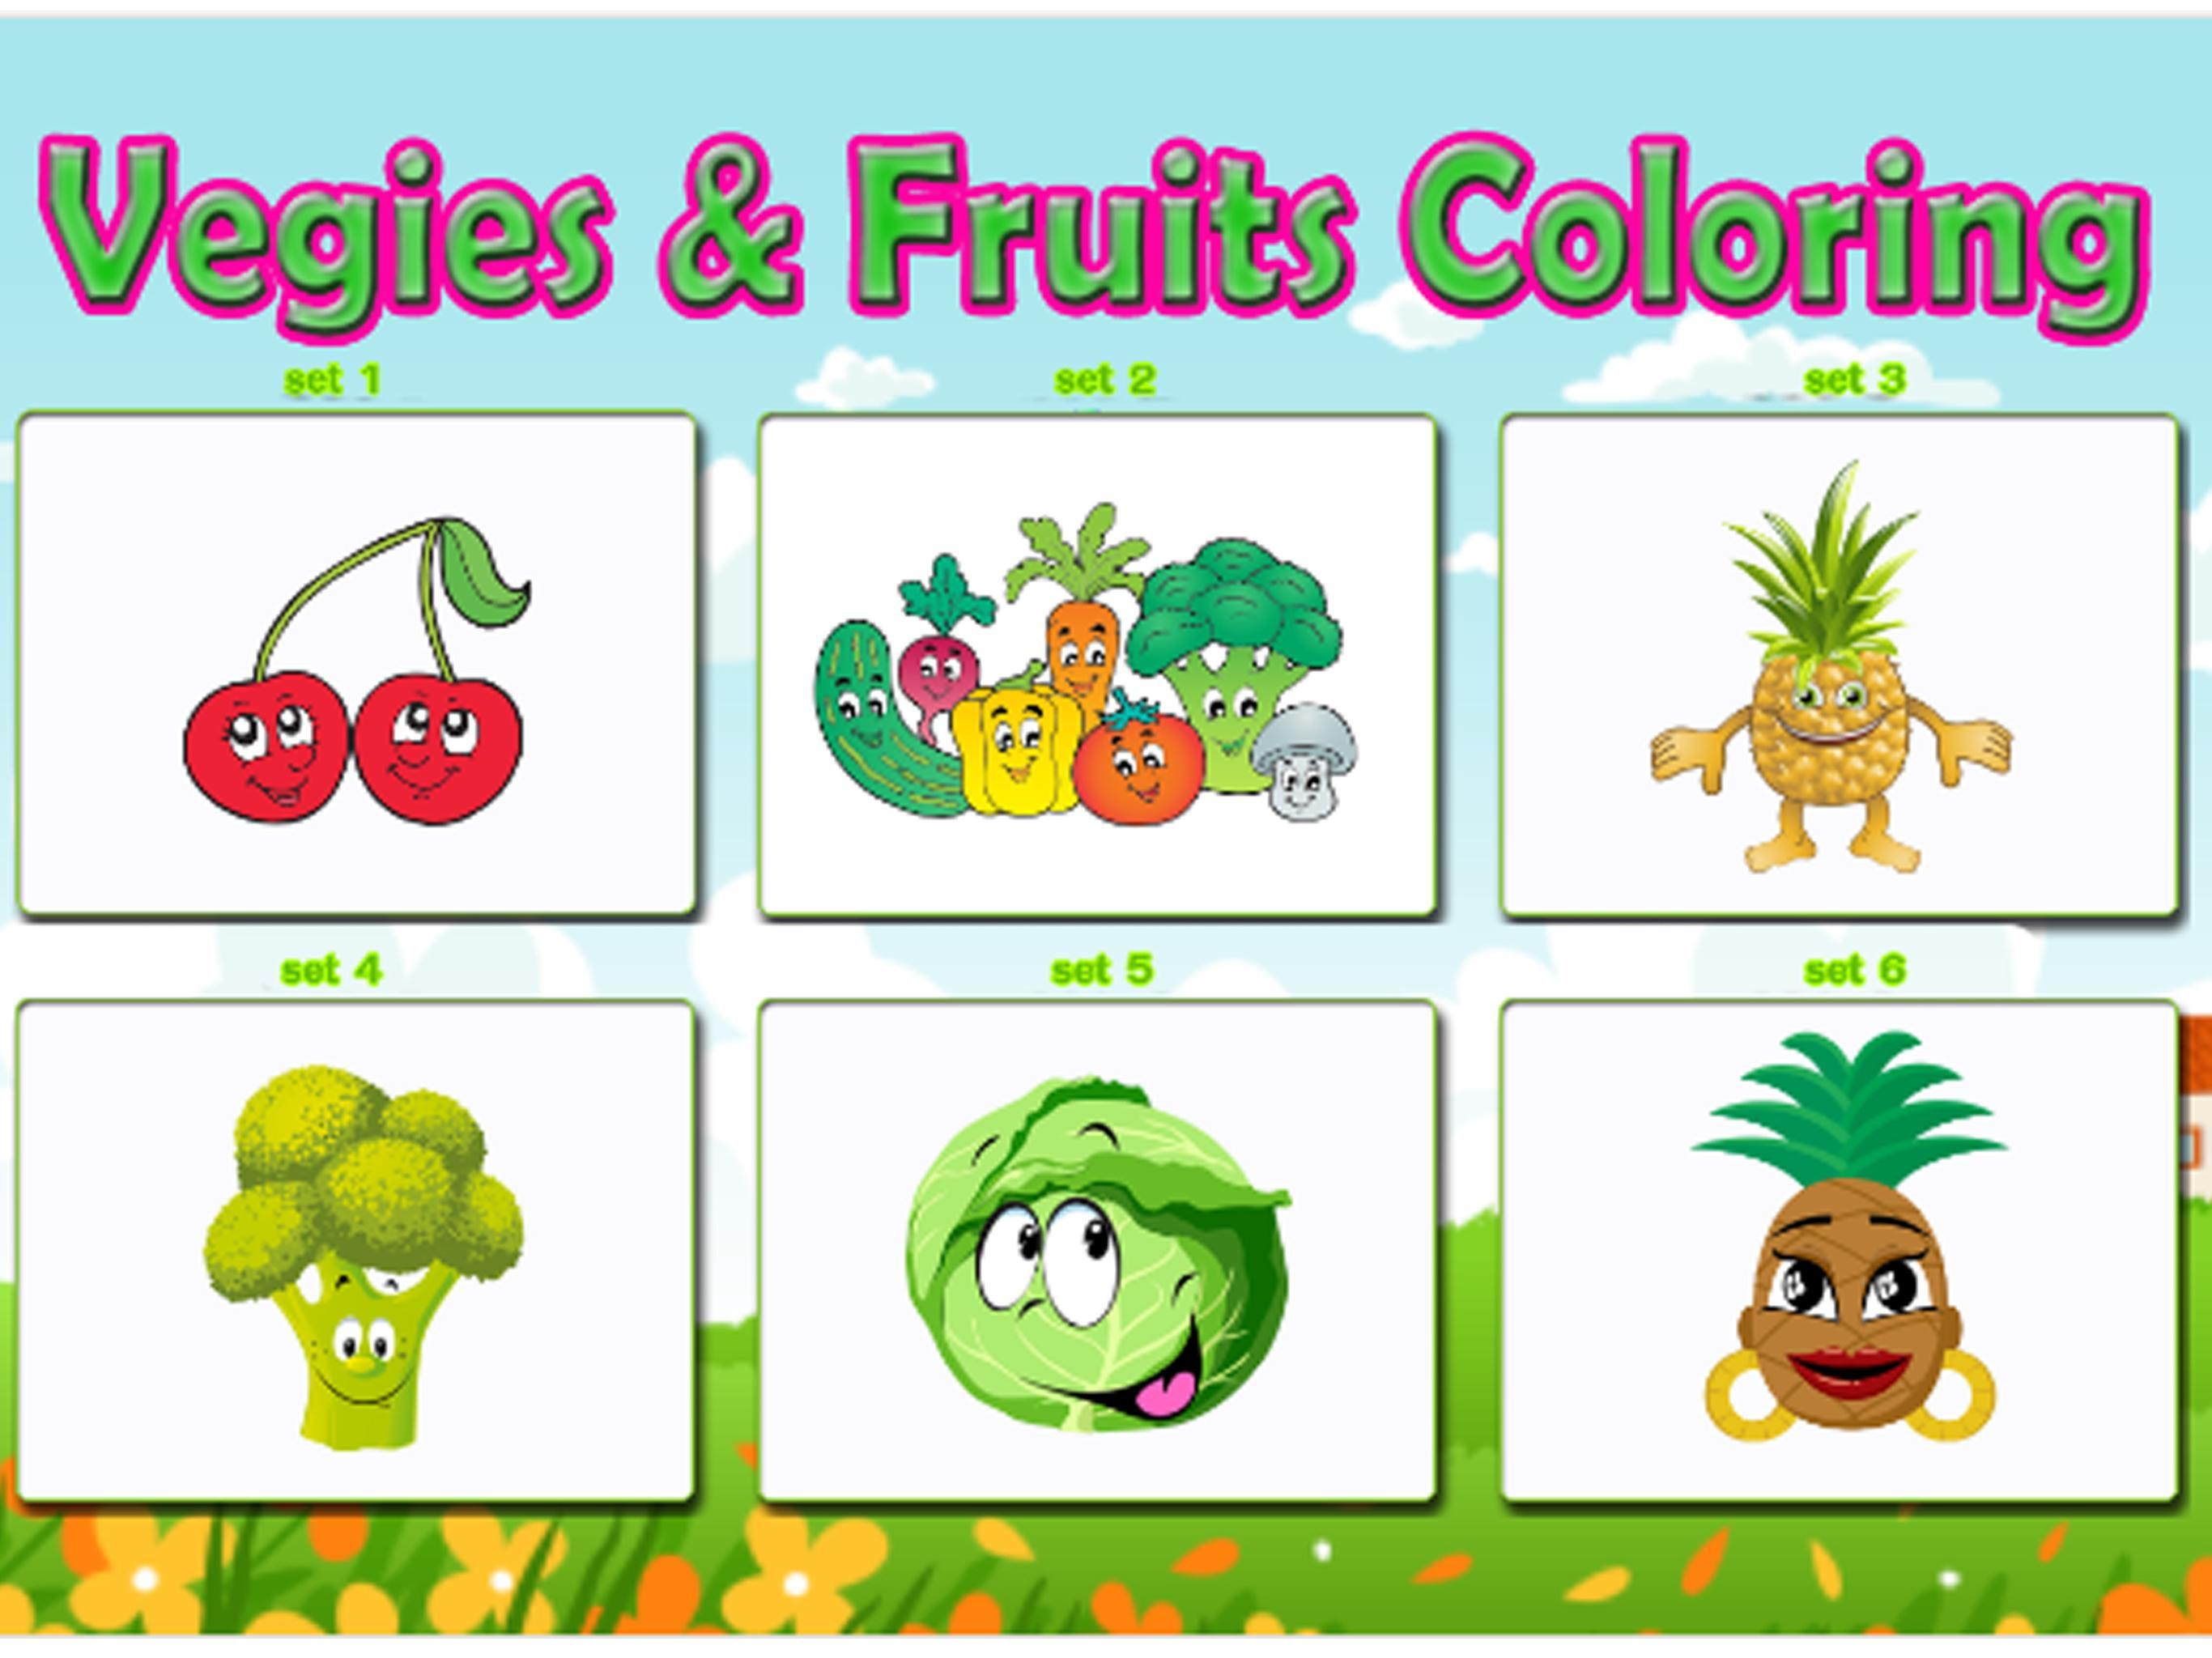 Verduras Frutas Para Colorear For Android Apk Download